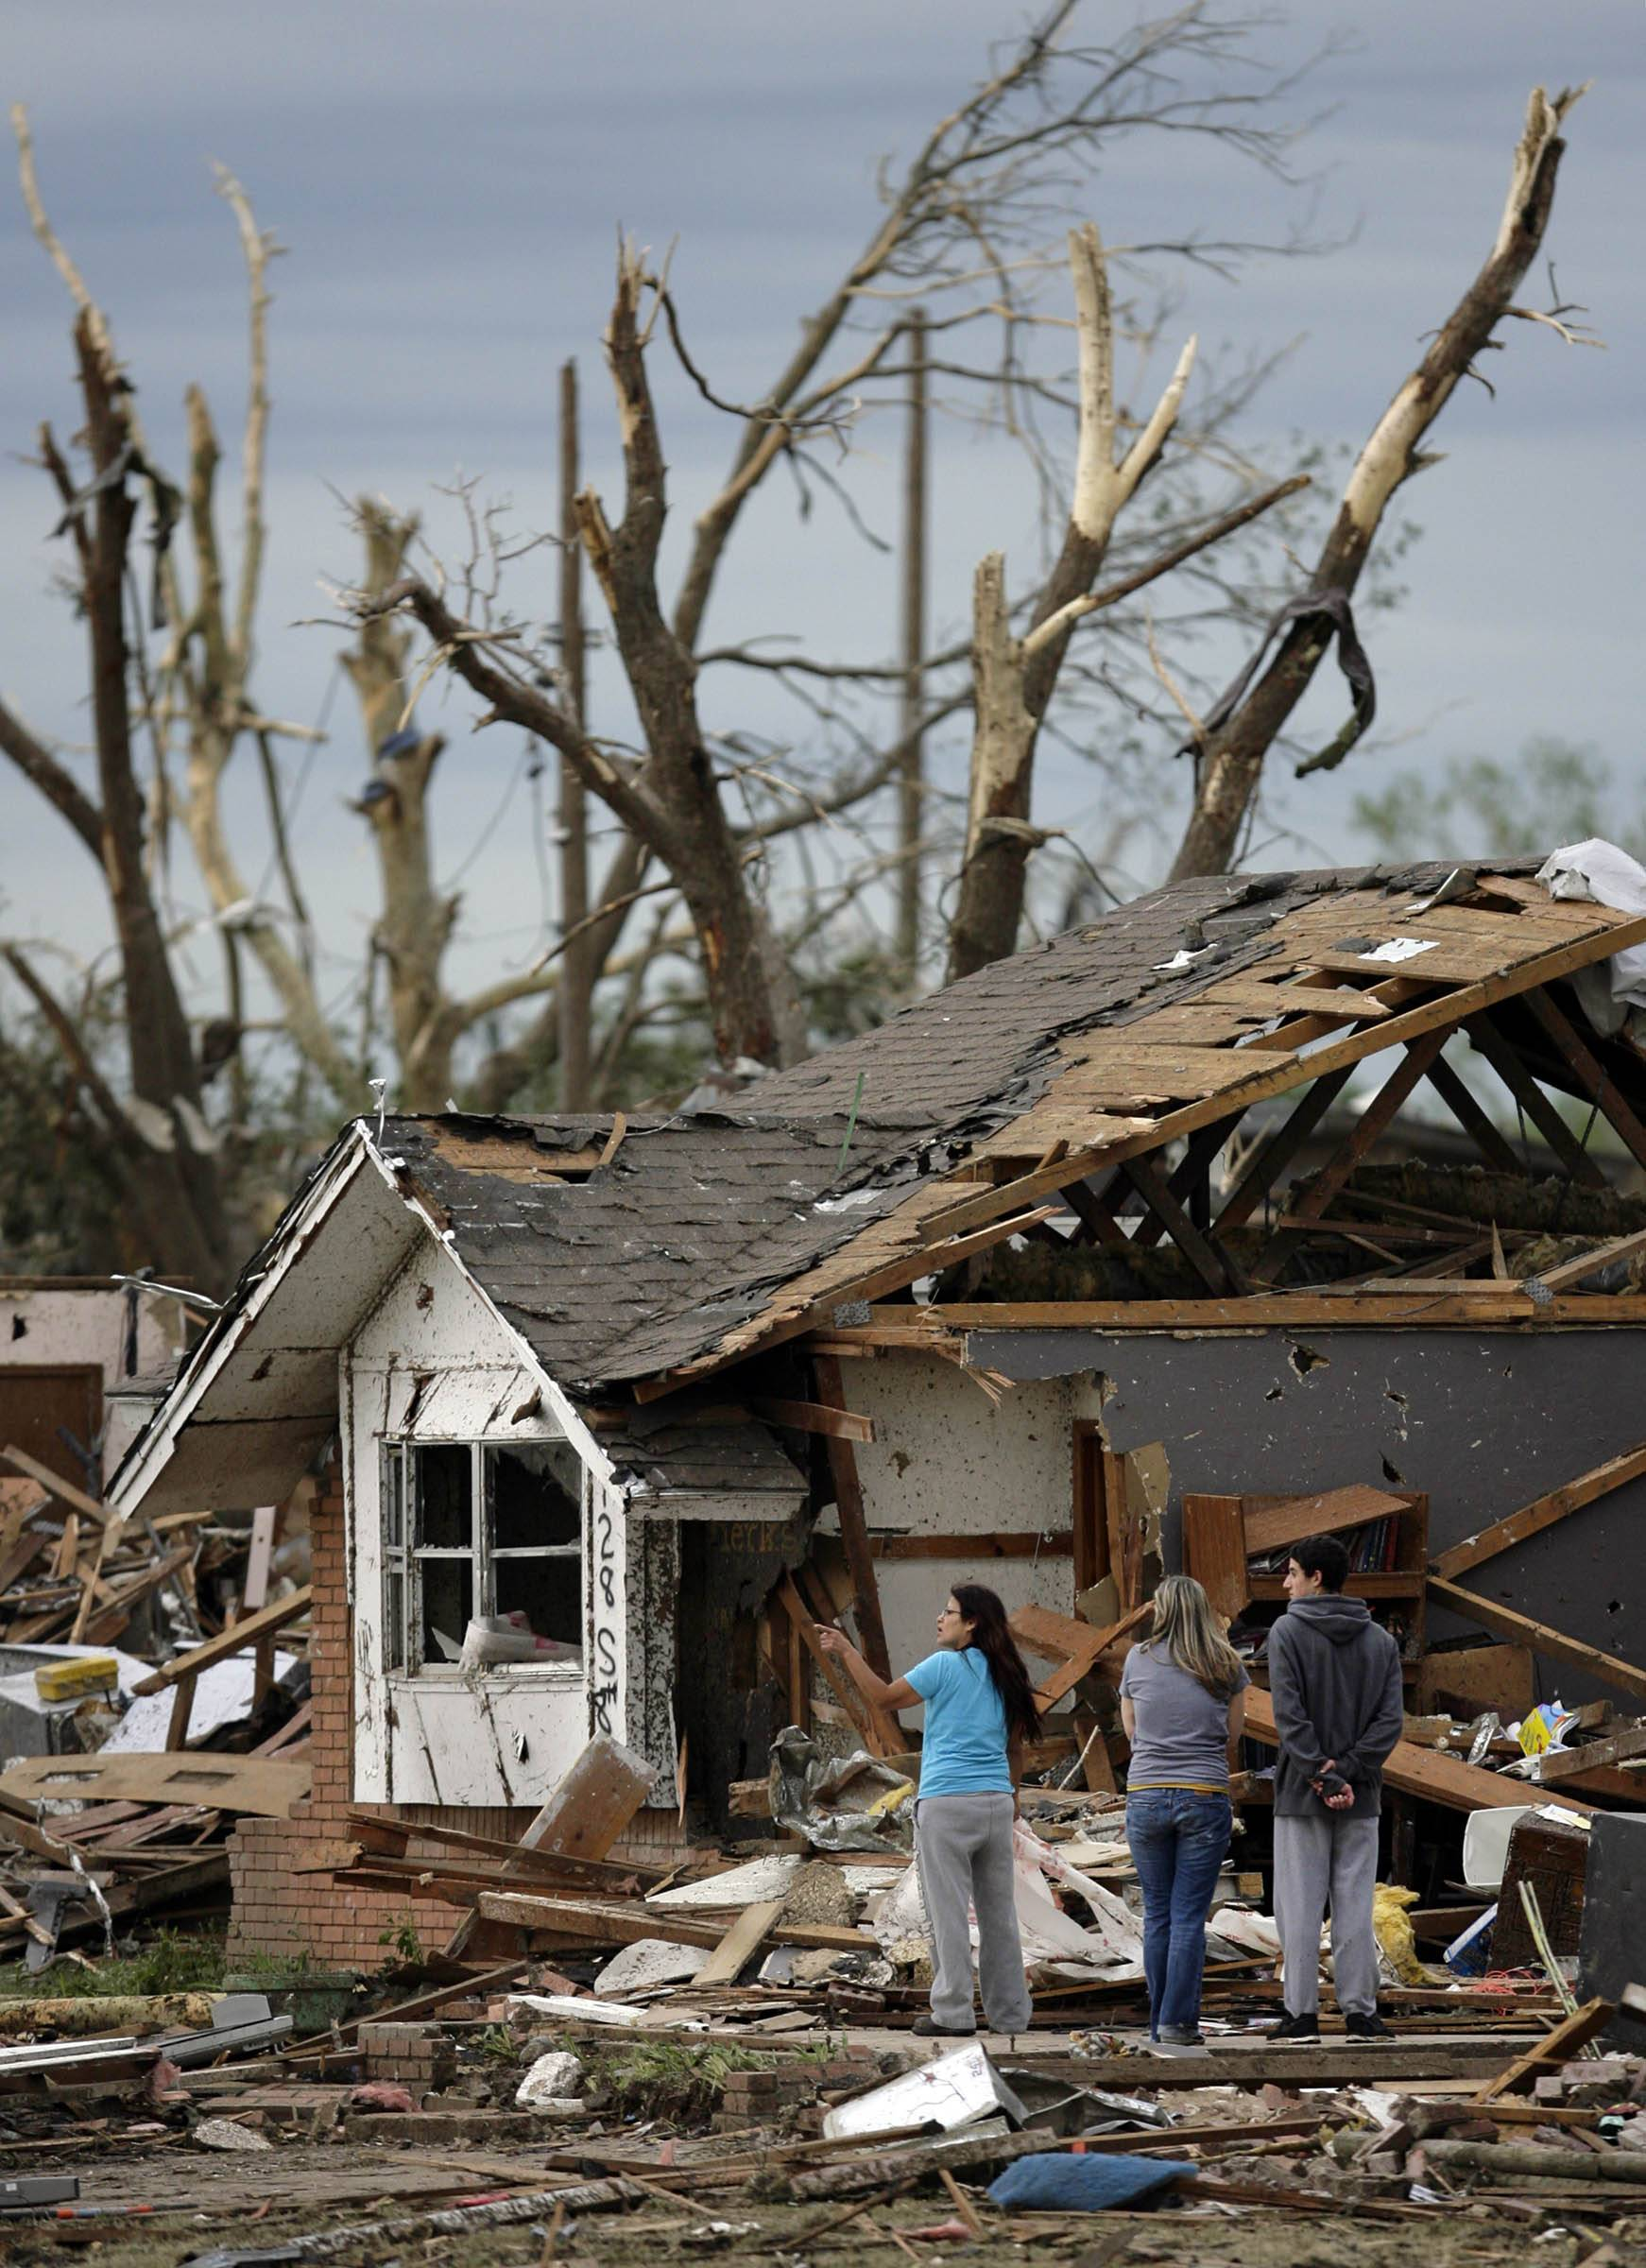 A family looks over their destroyed home in Moore, Okla. Tuesday, May 21, 2013. A huge tornado roared through the Oklahoma City suburb Monday, flattening entire neighborhoods and destroying an elementary school with a direct blow as children and teachers huddled against winds.